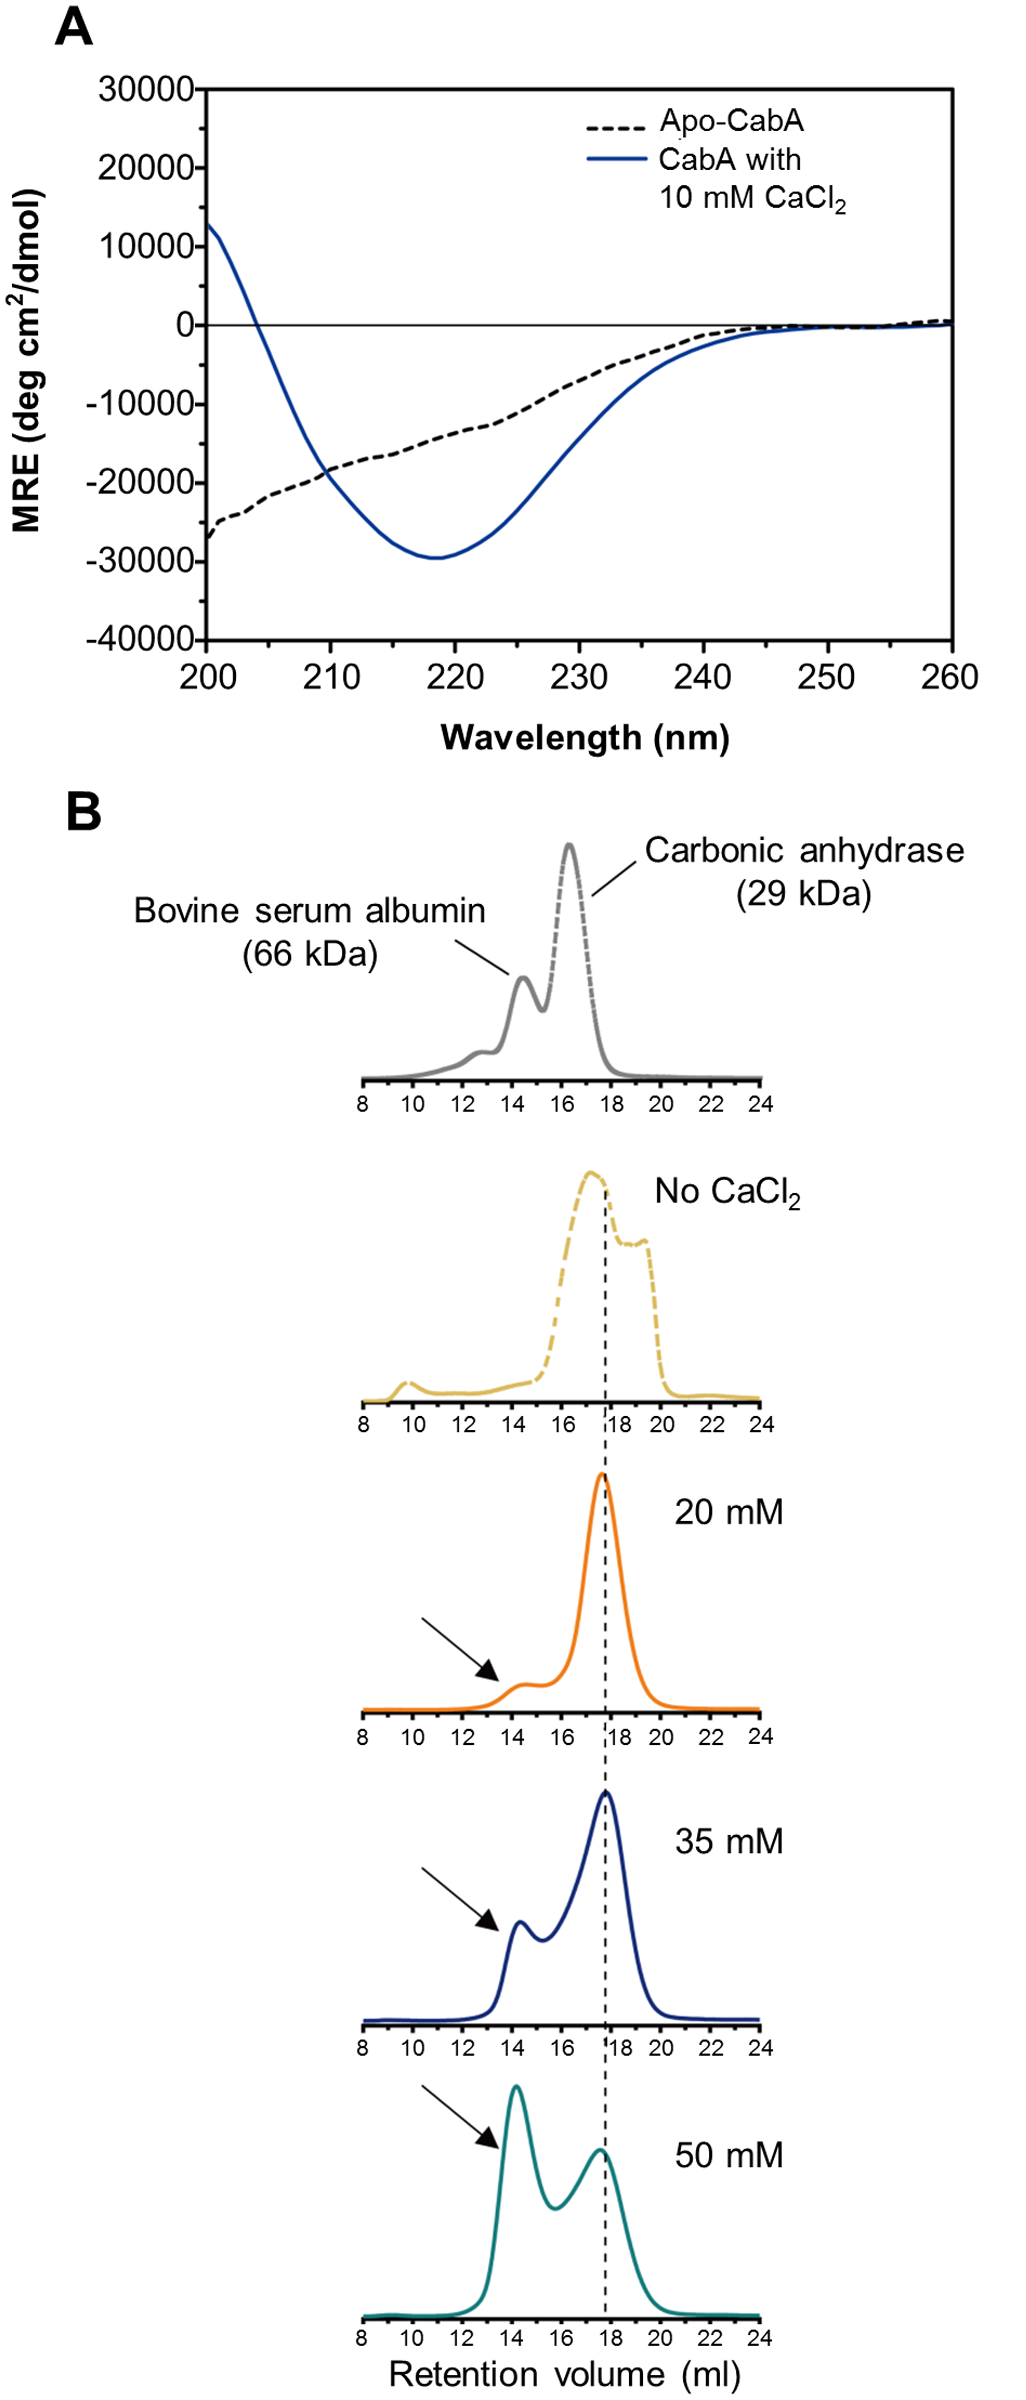 Calcium-induced conformational change and multimerization of CabA.